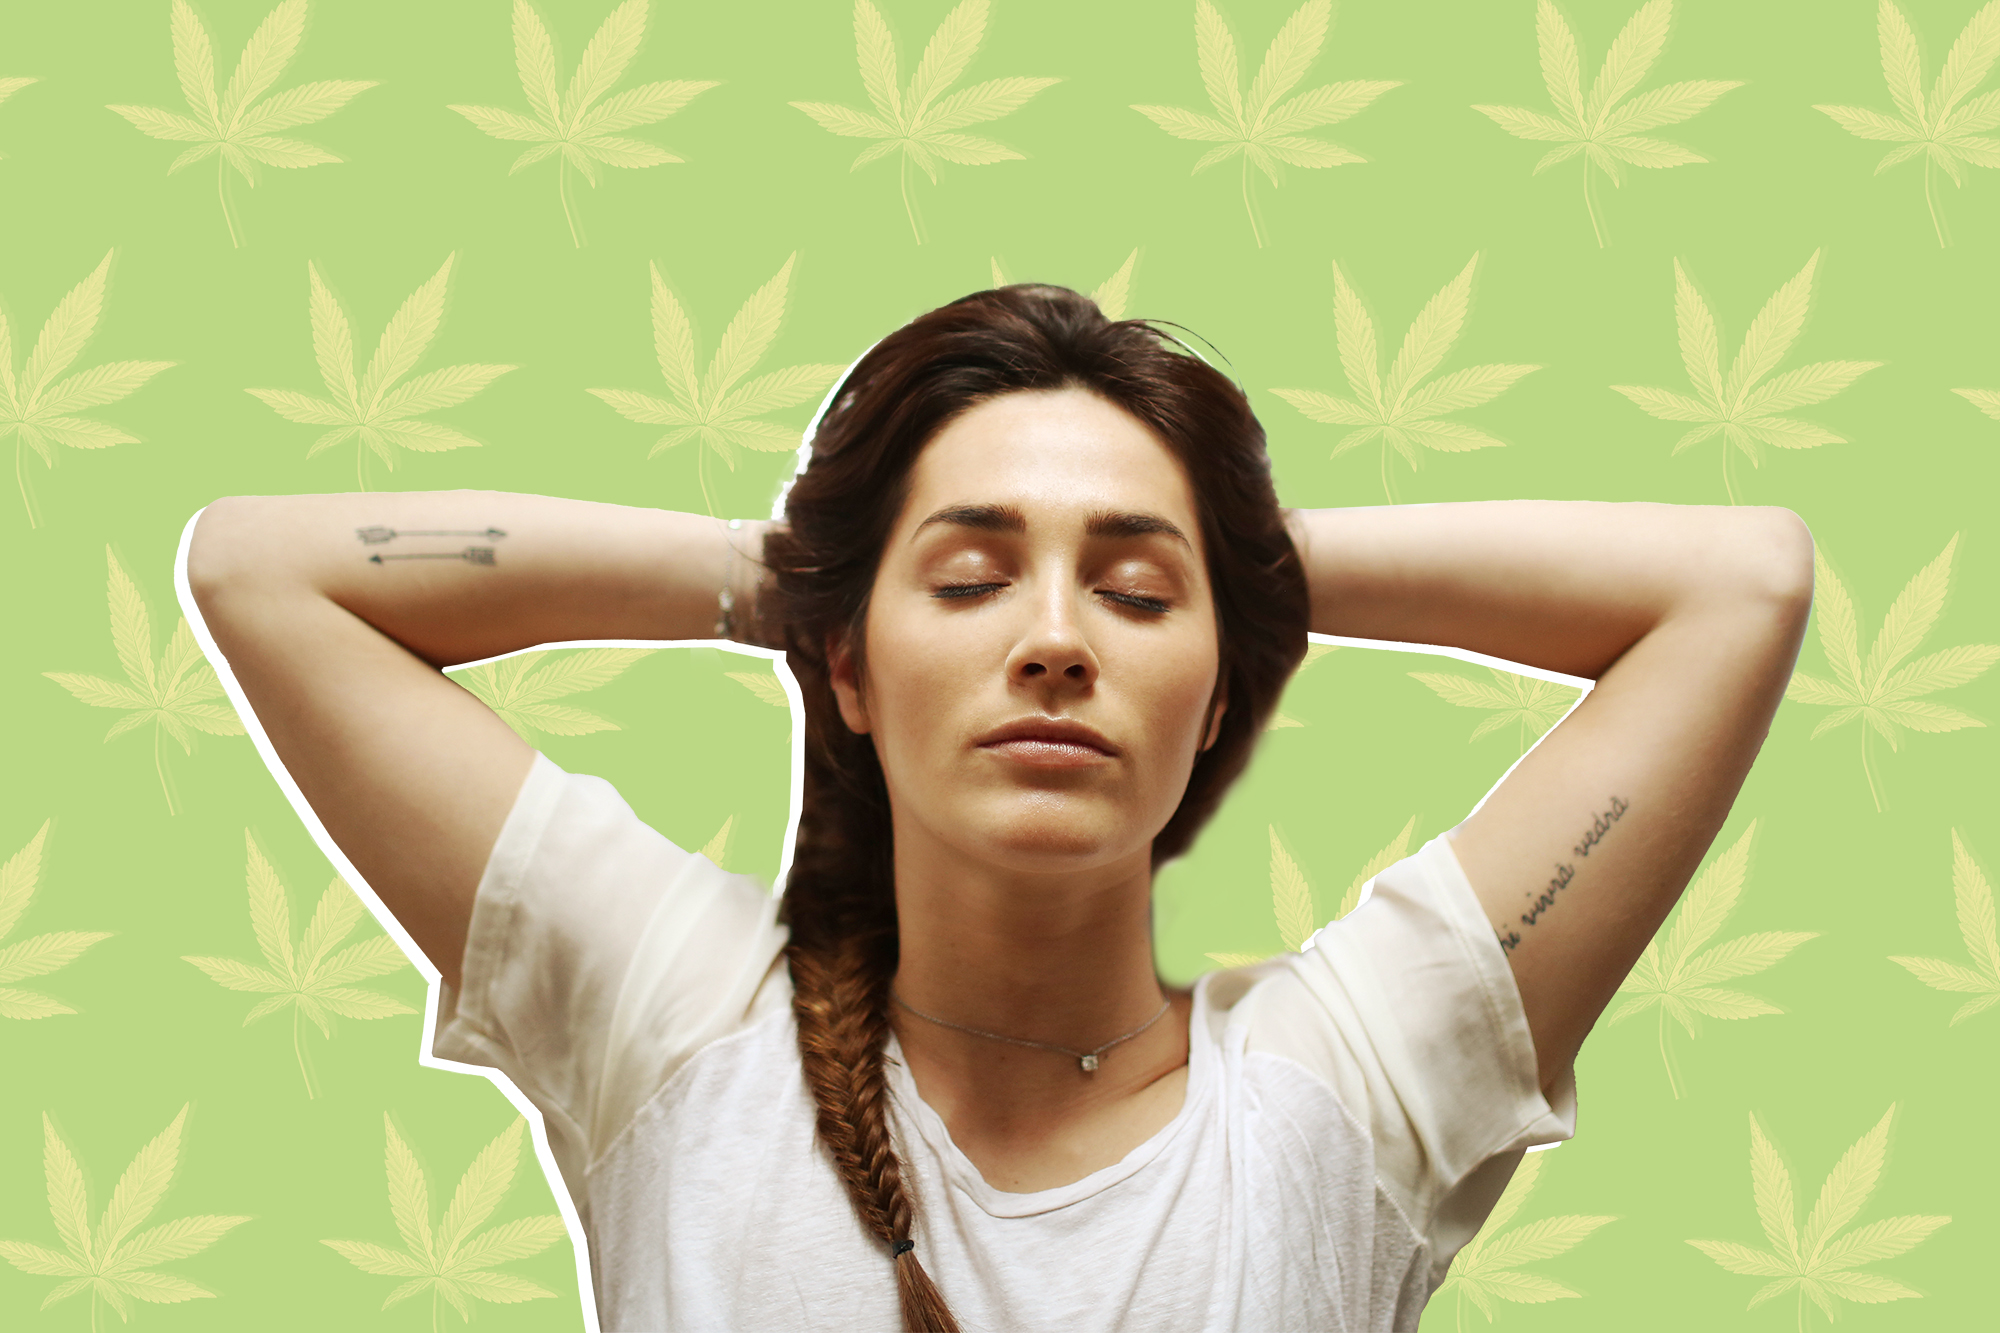 A young woman sleeping with a designed background of cannabis leaves